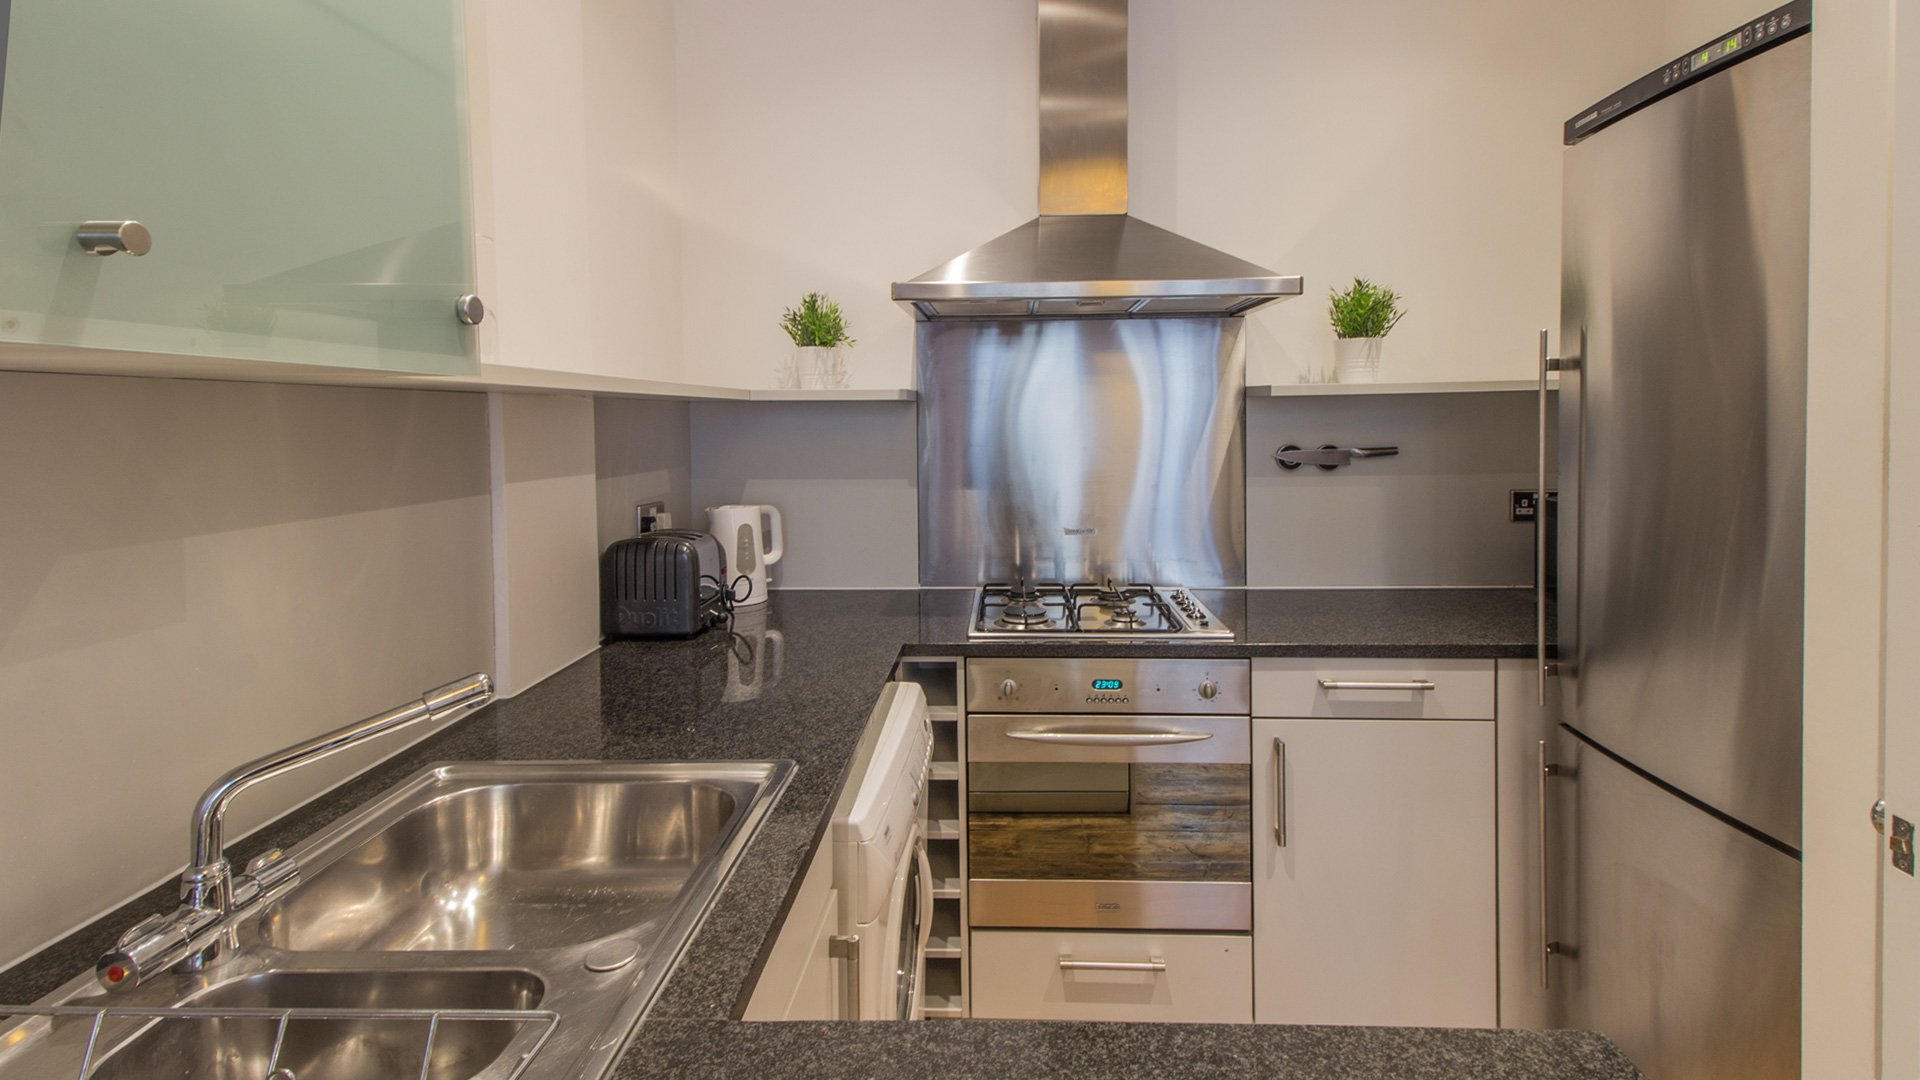 Serviced-Apartments-Clerkenwell---London-City-Accommodation-Pear-Tree-Court-|-Book-Serviced-Apartments-in-Clerkenwell-now!-Cheap-Short-Let-Accommodation-London-|-Urban-Stay